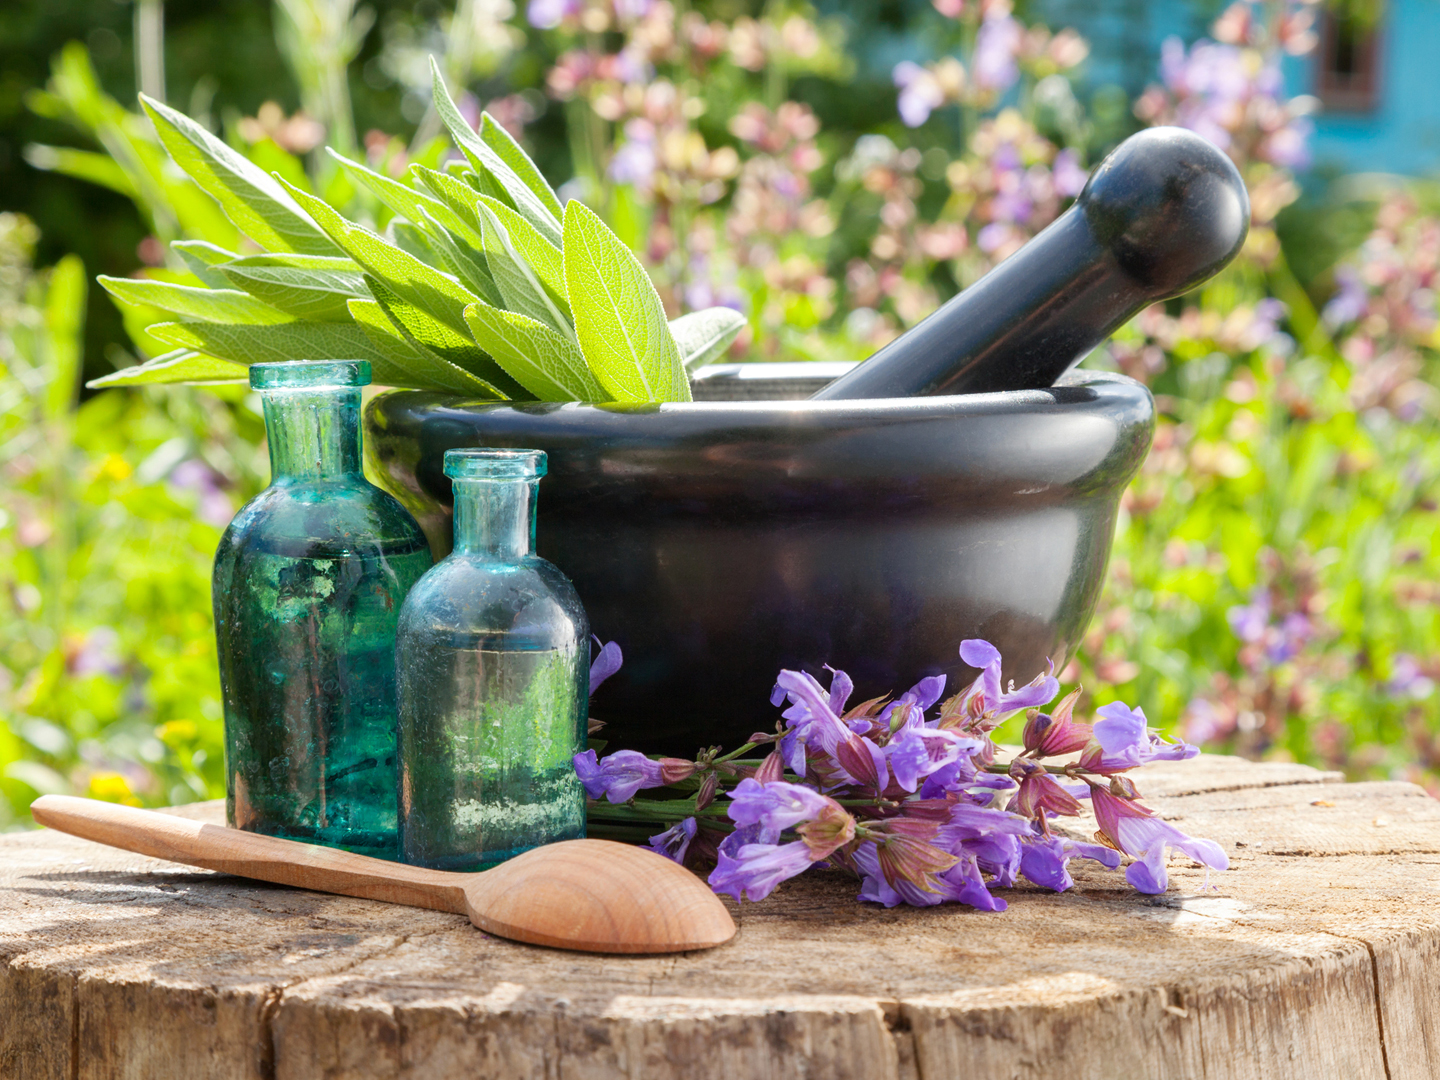 Homeopathic Medicine Homeopathic Doctor Homeopathy